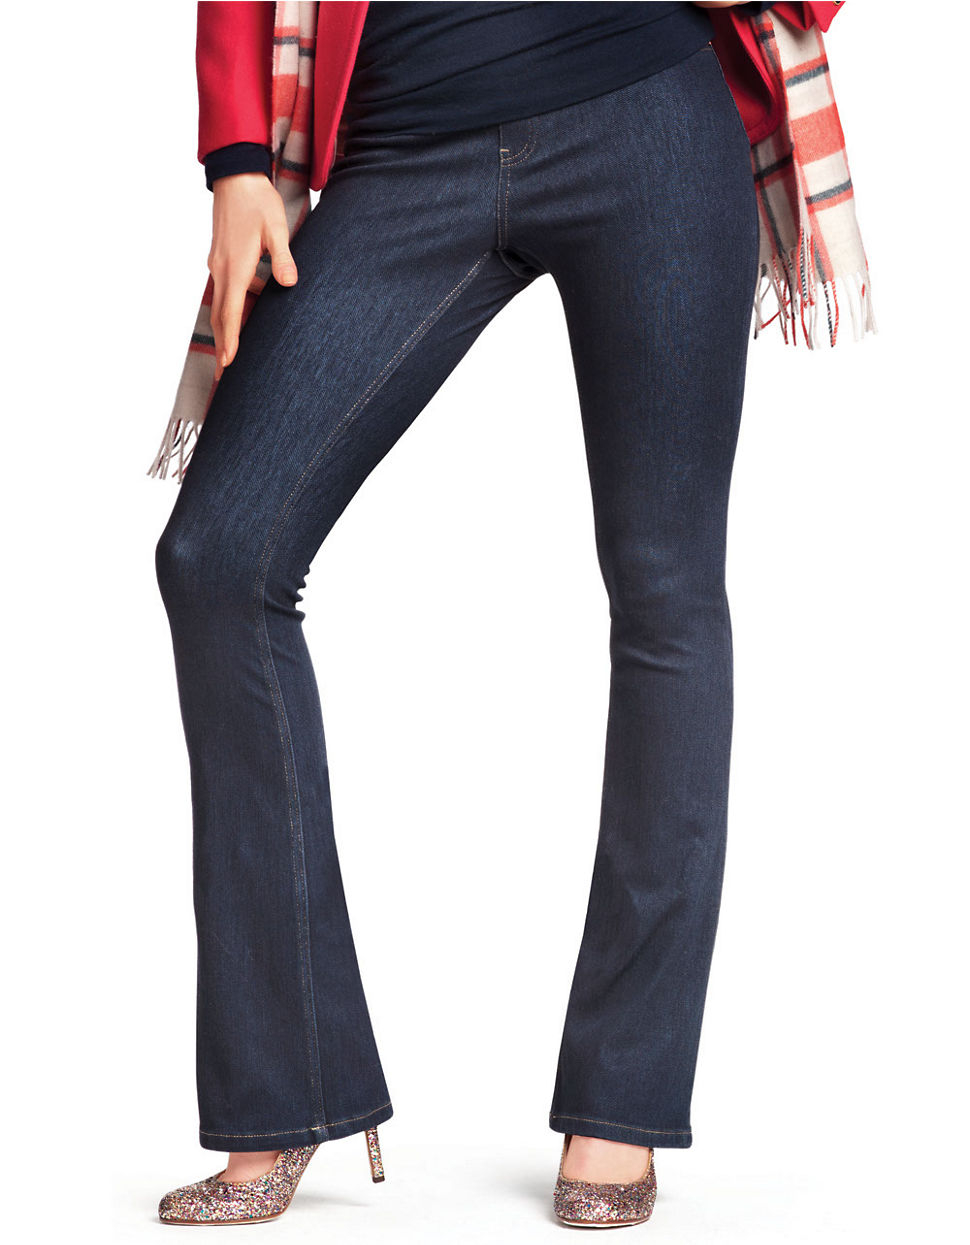 Womens Stretch Jeans Bootcut